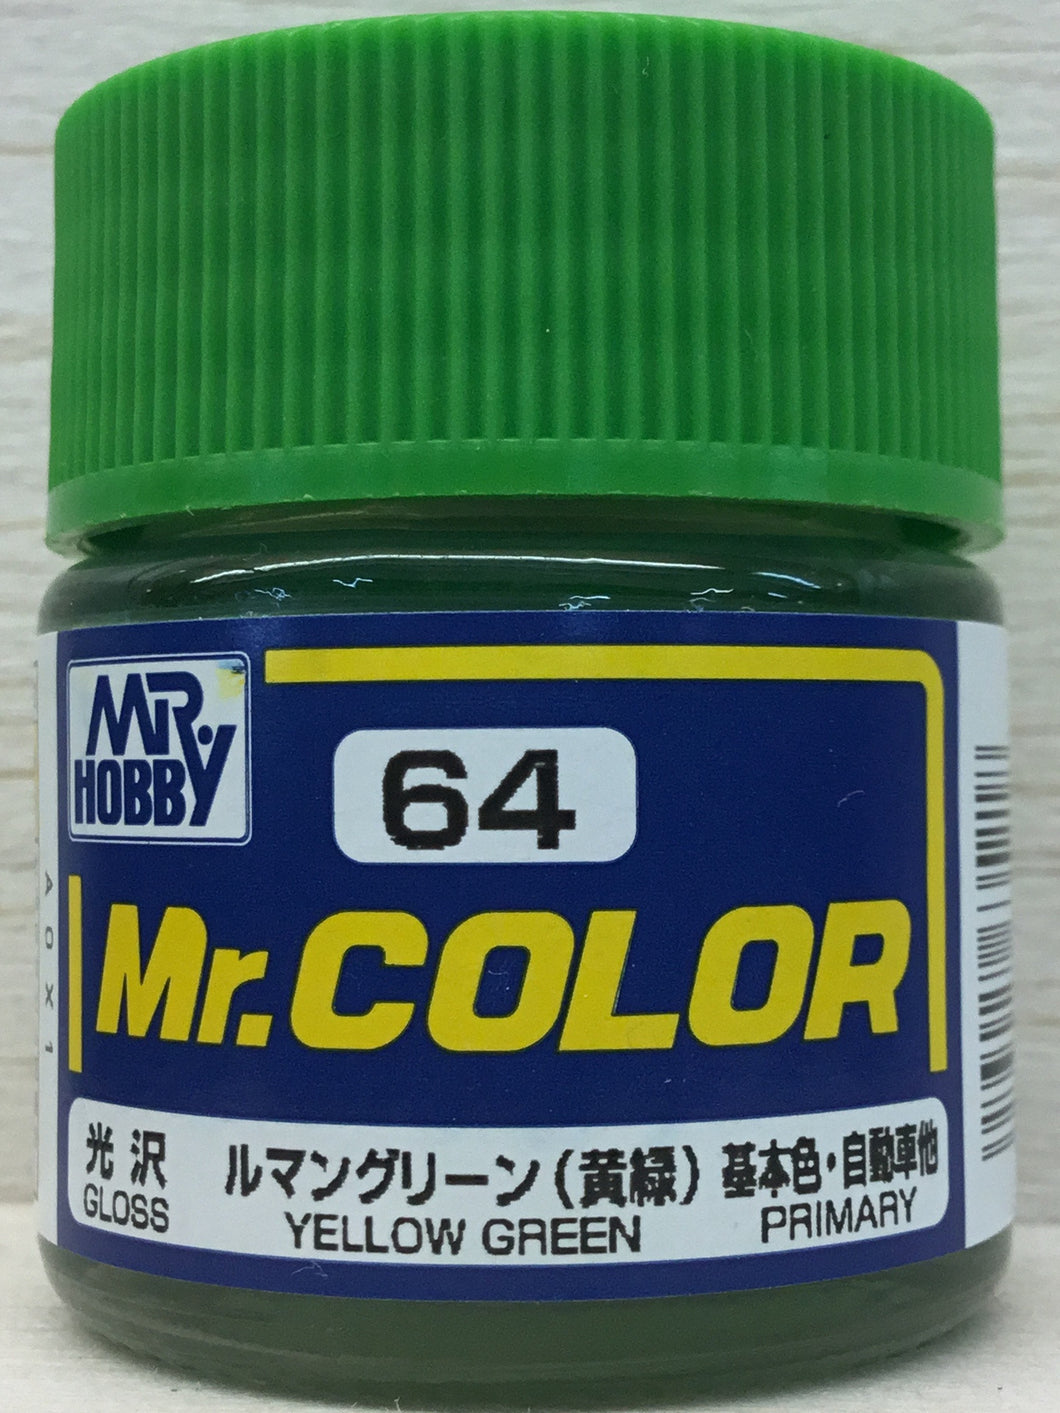 GUNZE MR COLOR C64 GLOSS YELLOW GREEN